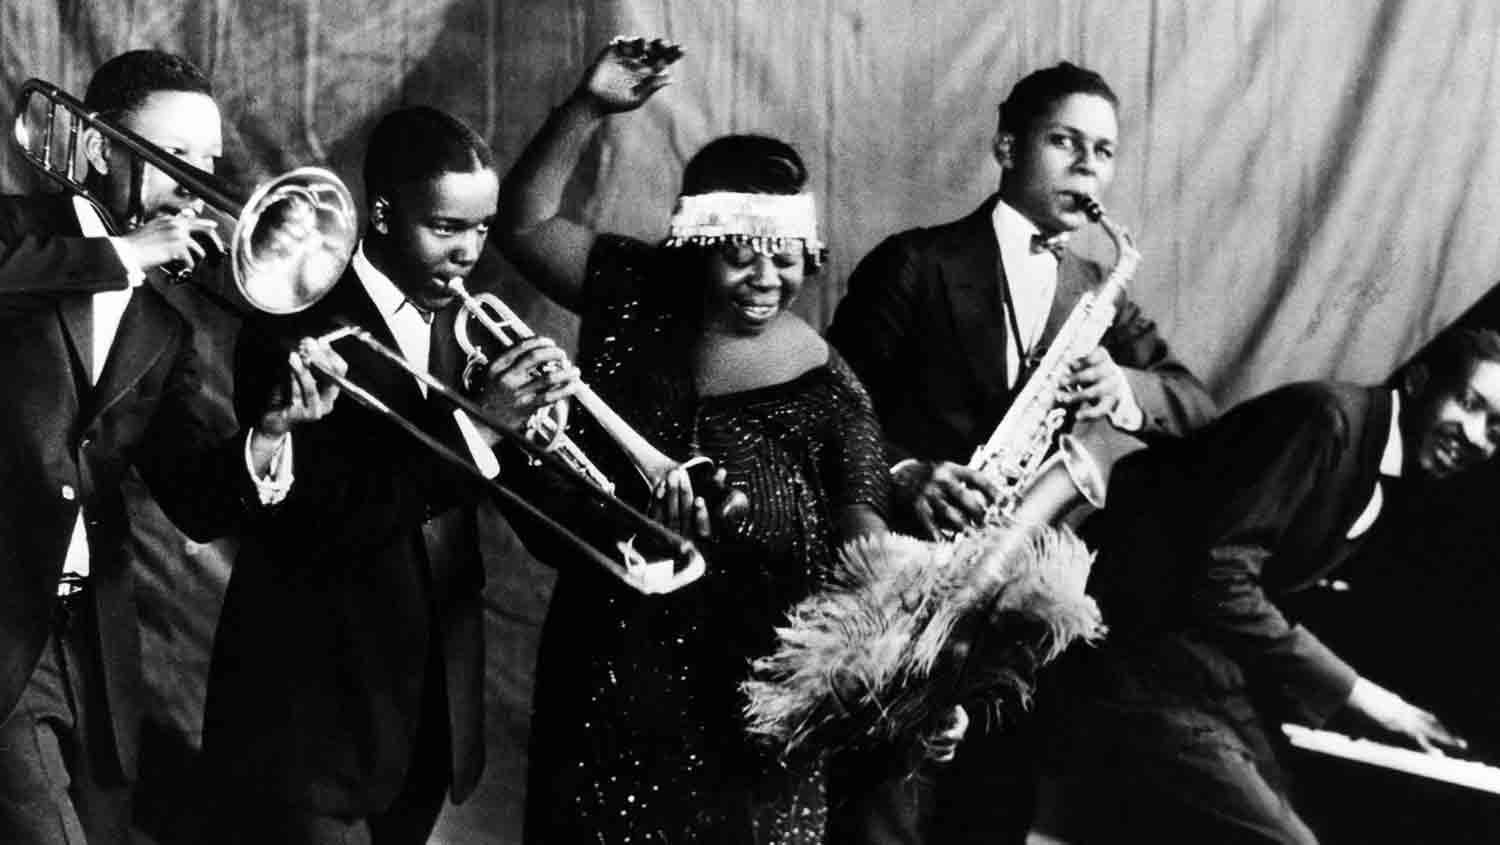 Ma Rainey Georgia Jazz Band pose for a studio group shot c 1924 with 'Gabriel', Albert Wynn, Dave Nelson, Ma Rainey, Ed Pollack and Thomas A Dorsey.